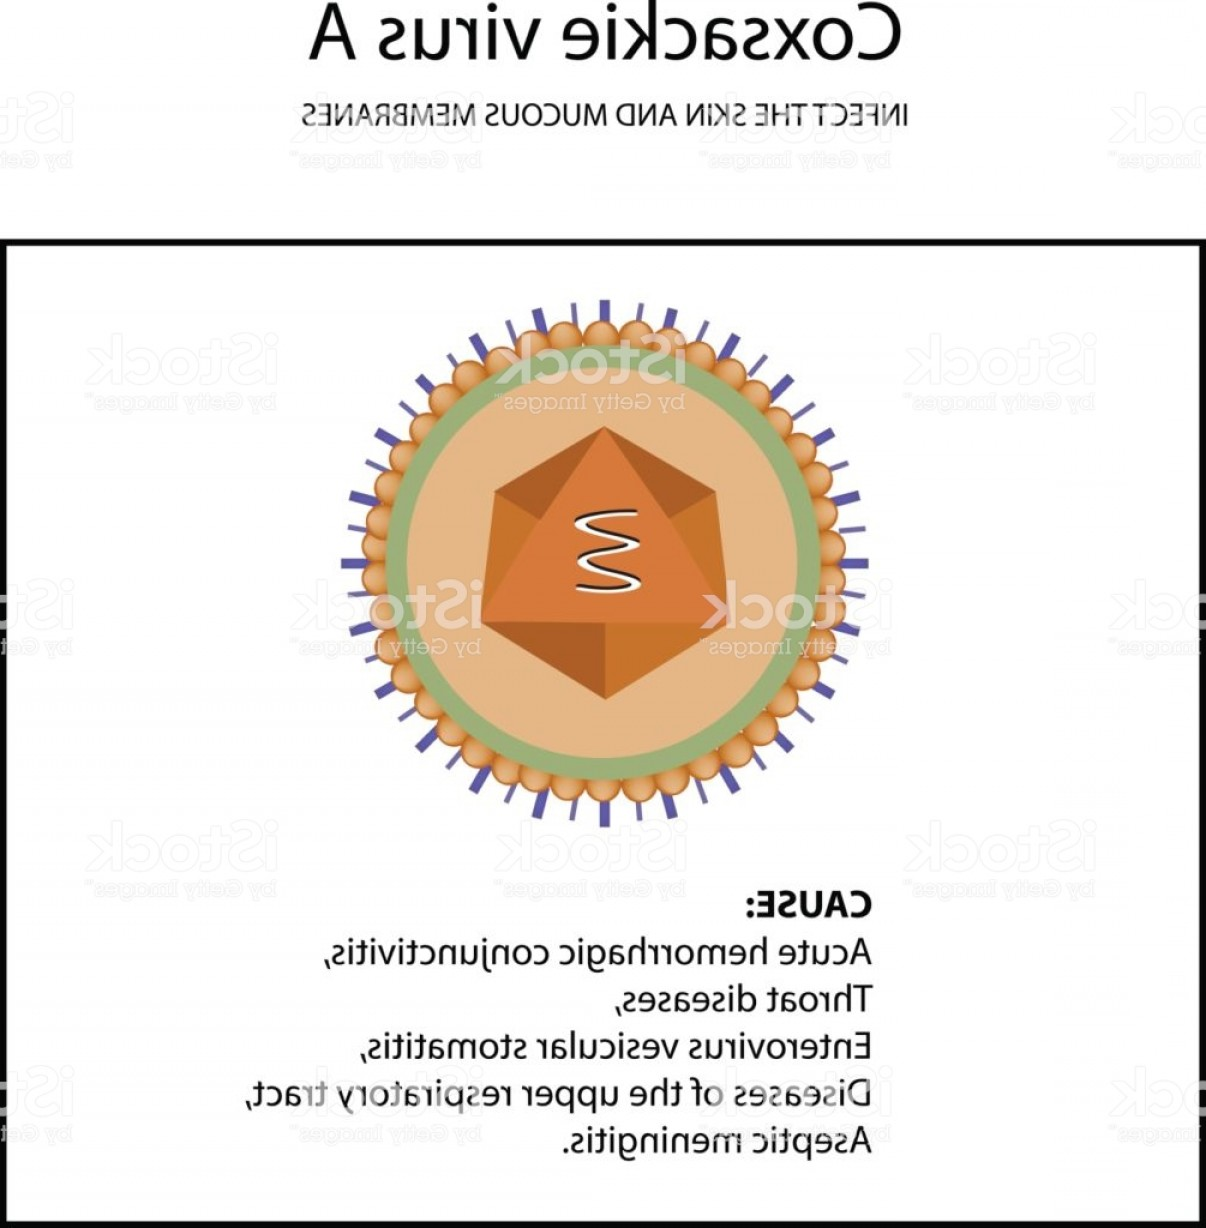 Vector Virus That Causes: The Structure Of Coxsackie Virus A Symptoms Of The Disease Enterovirus Infographics Gm